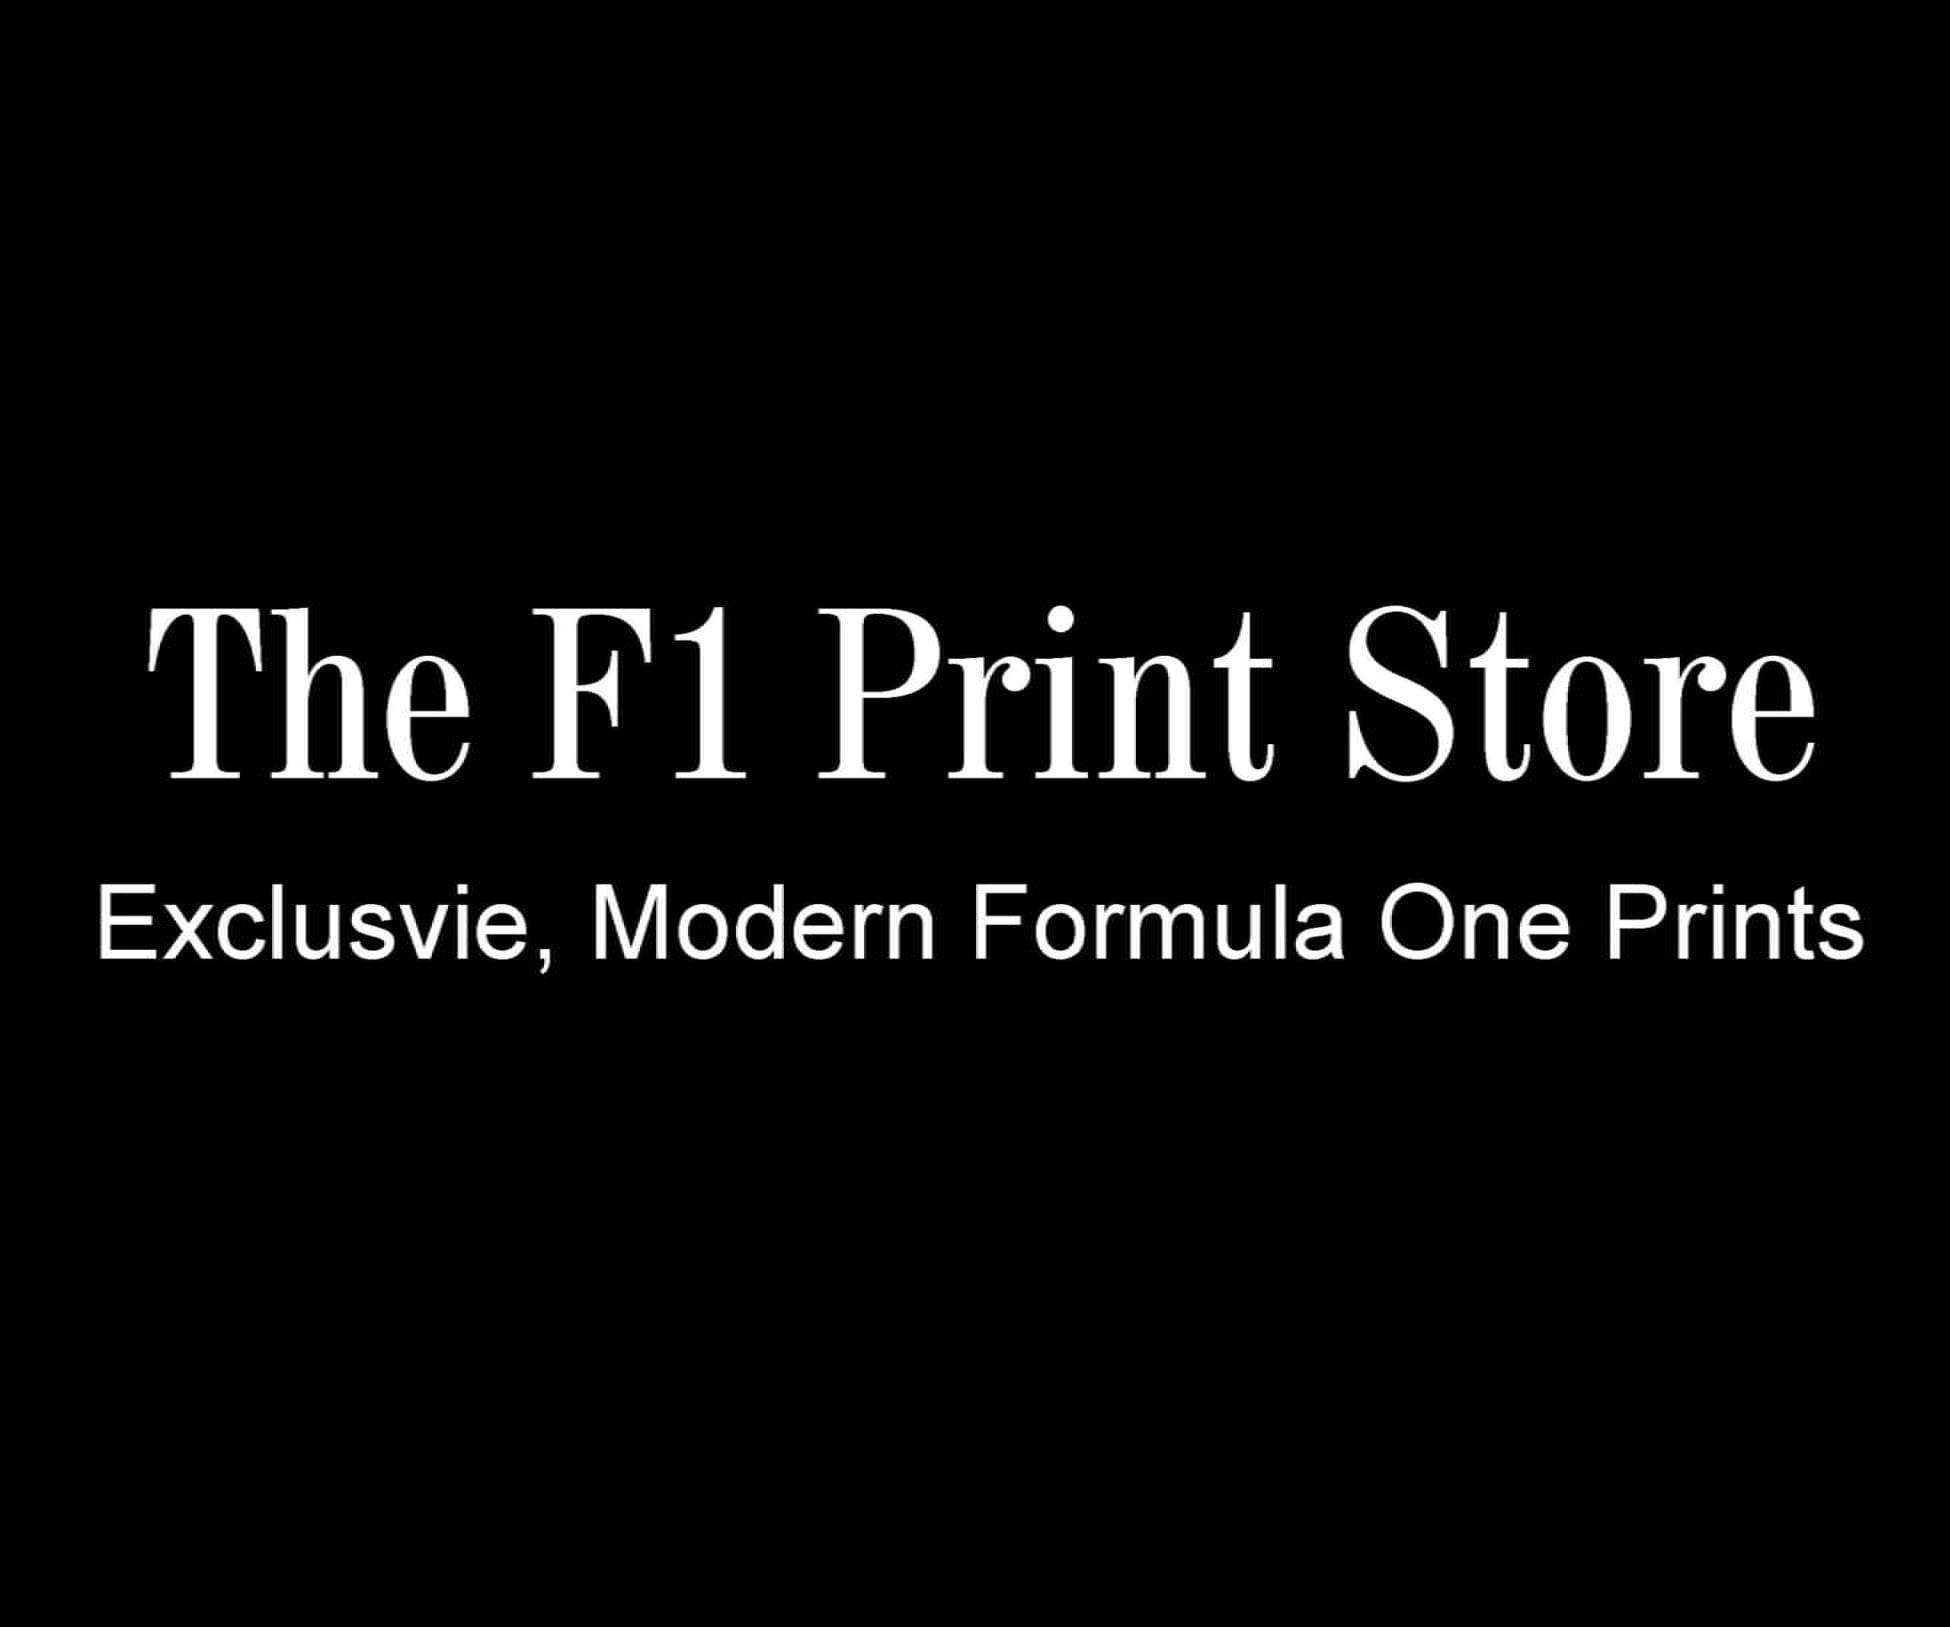 The GPBox - F1 Prints Store